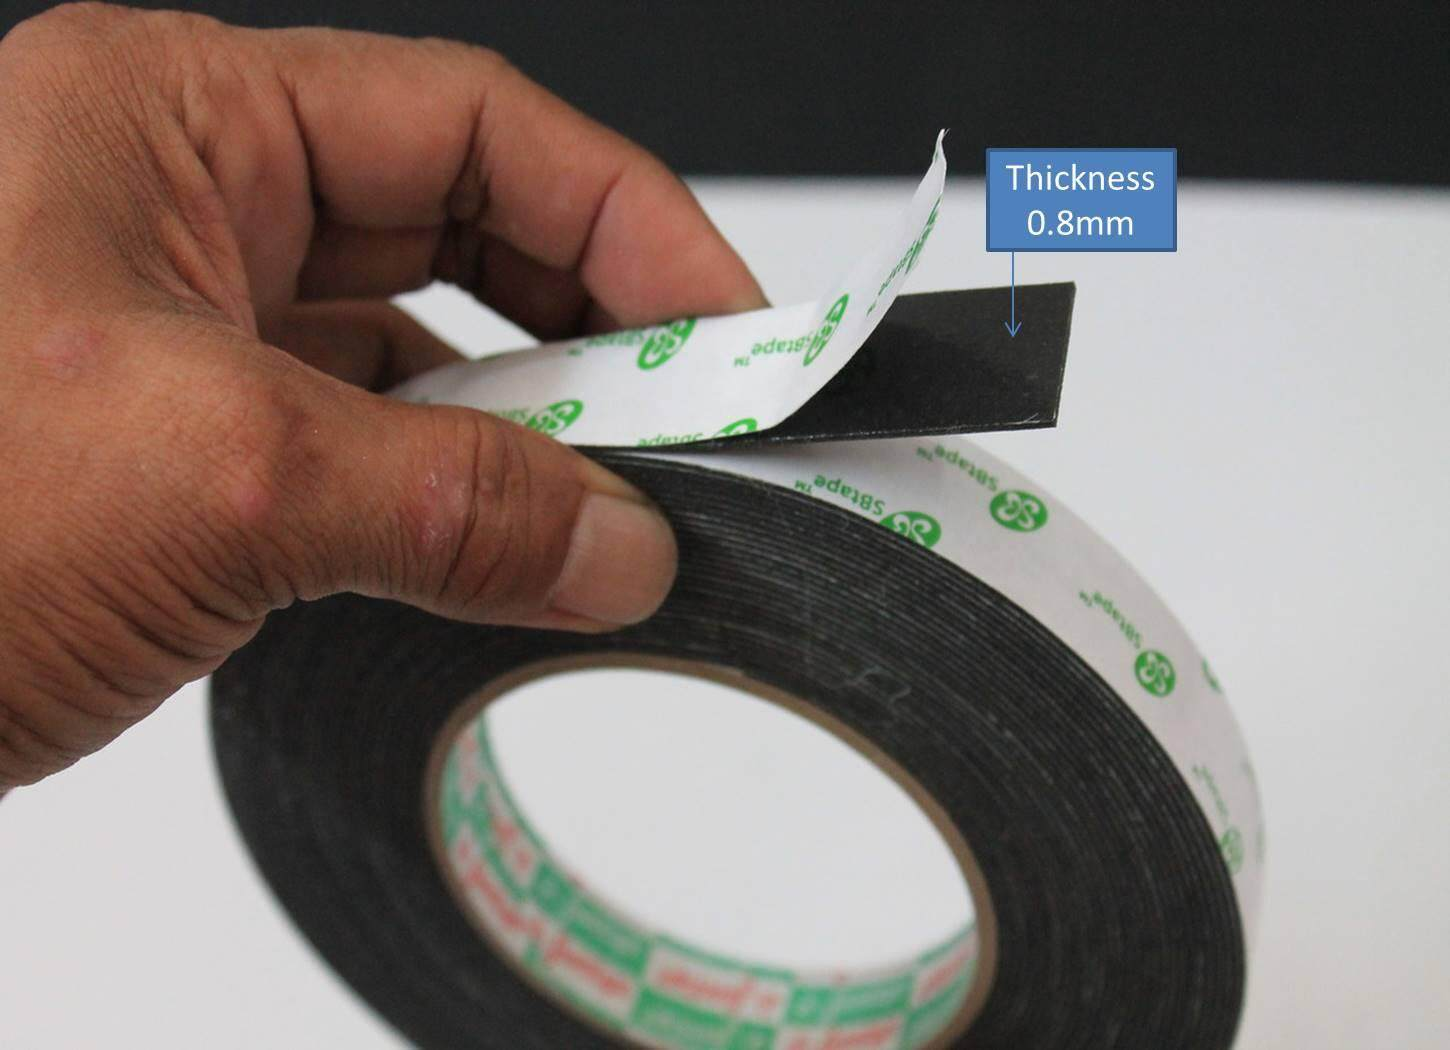 1 Pcs Heavy duty Double side tape 18mm for mounting wall sign board.Ship within 6 hours